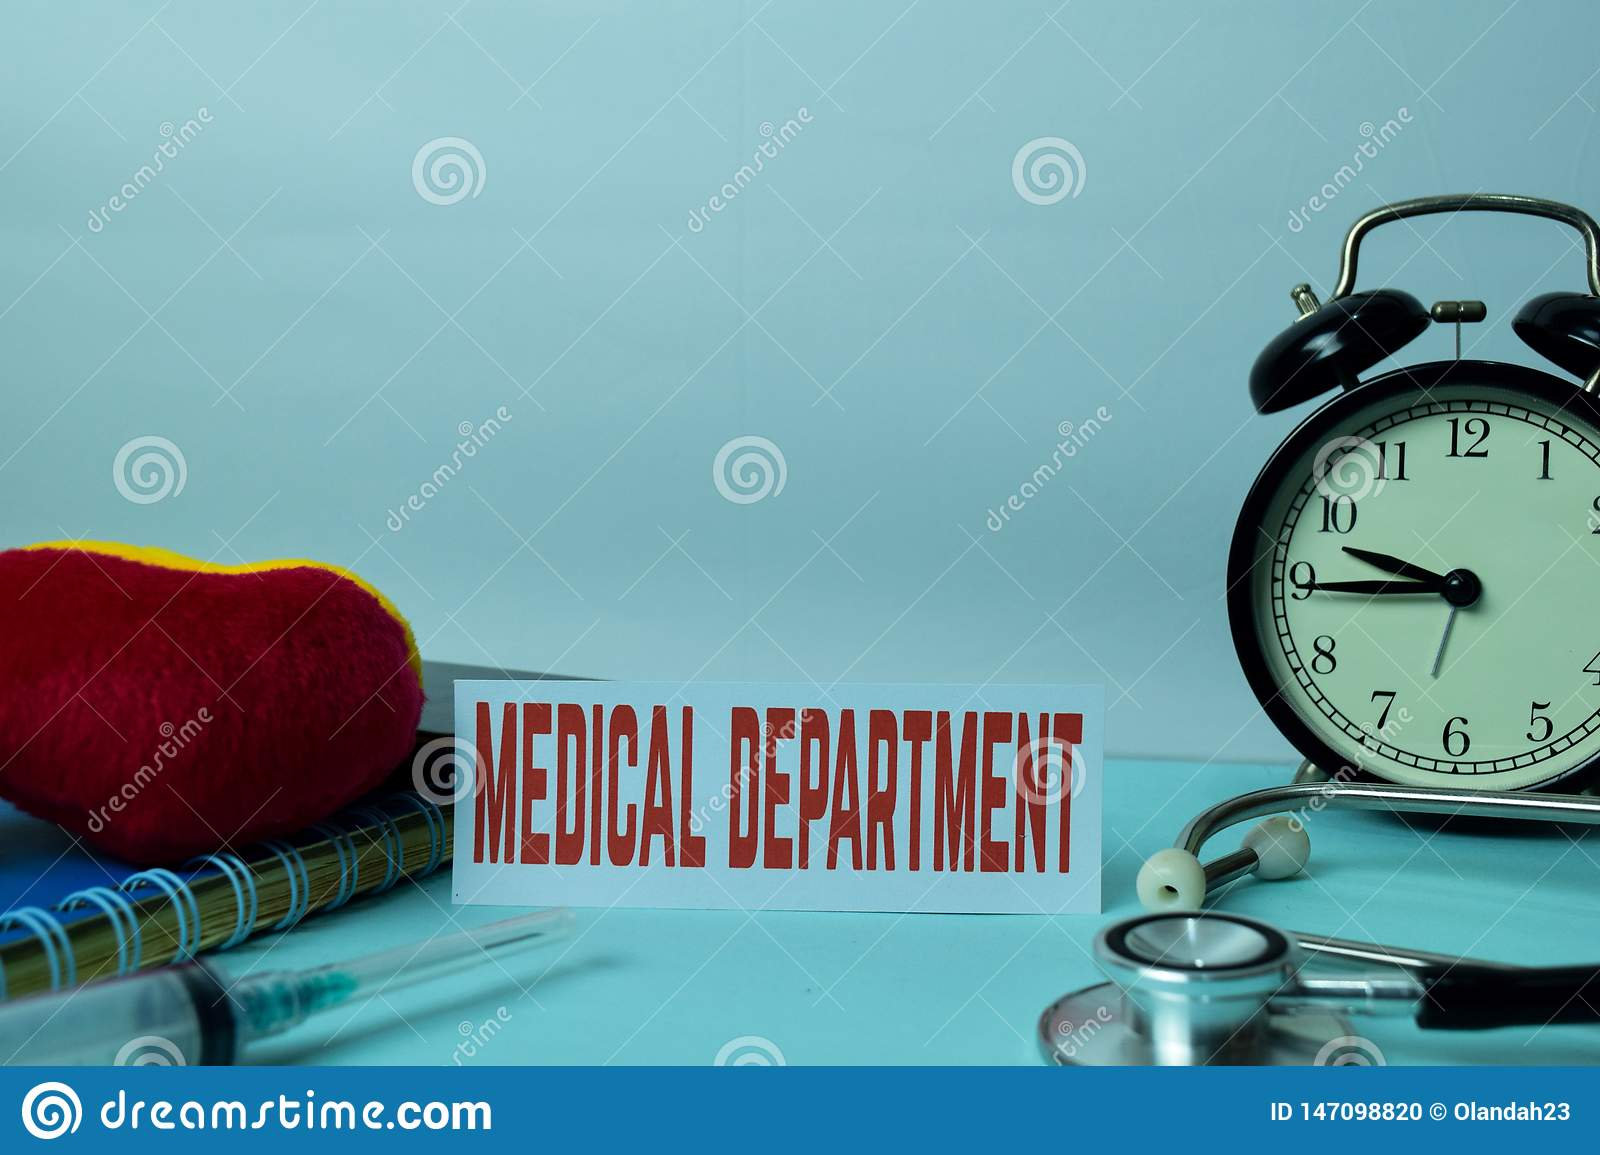 Medical Department Planning on Background of Working Table with Office Supplies. Medical and Healthcare Concept Planning on White